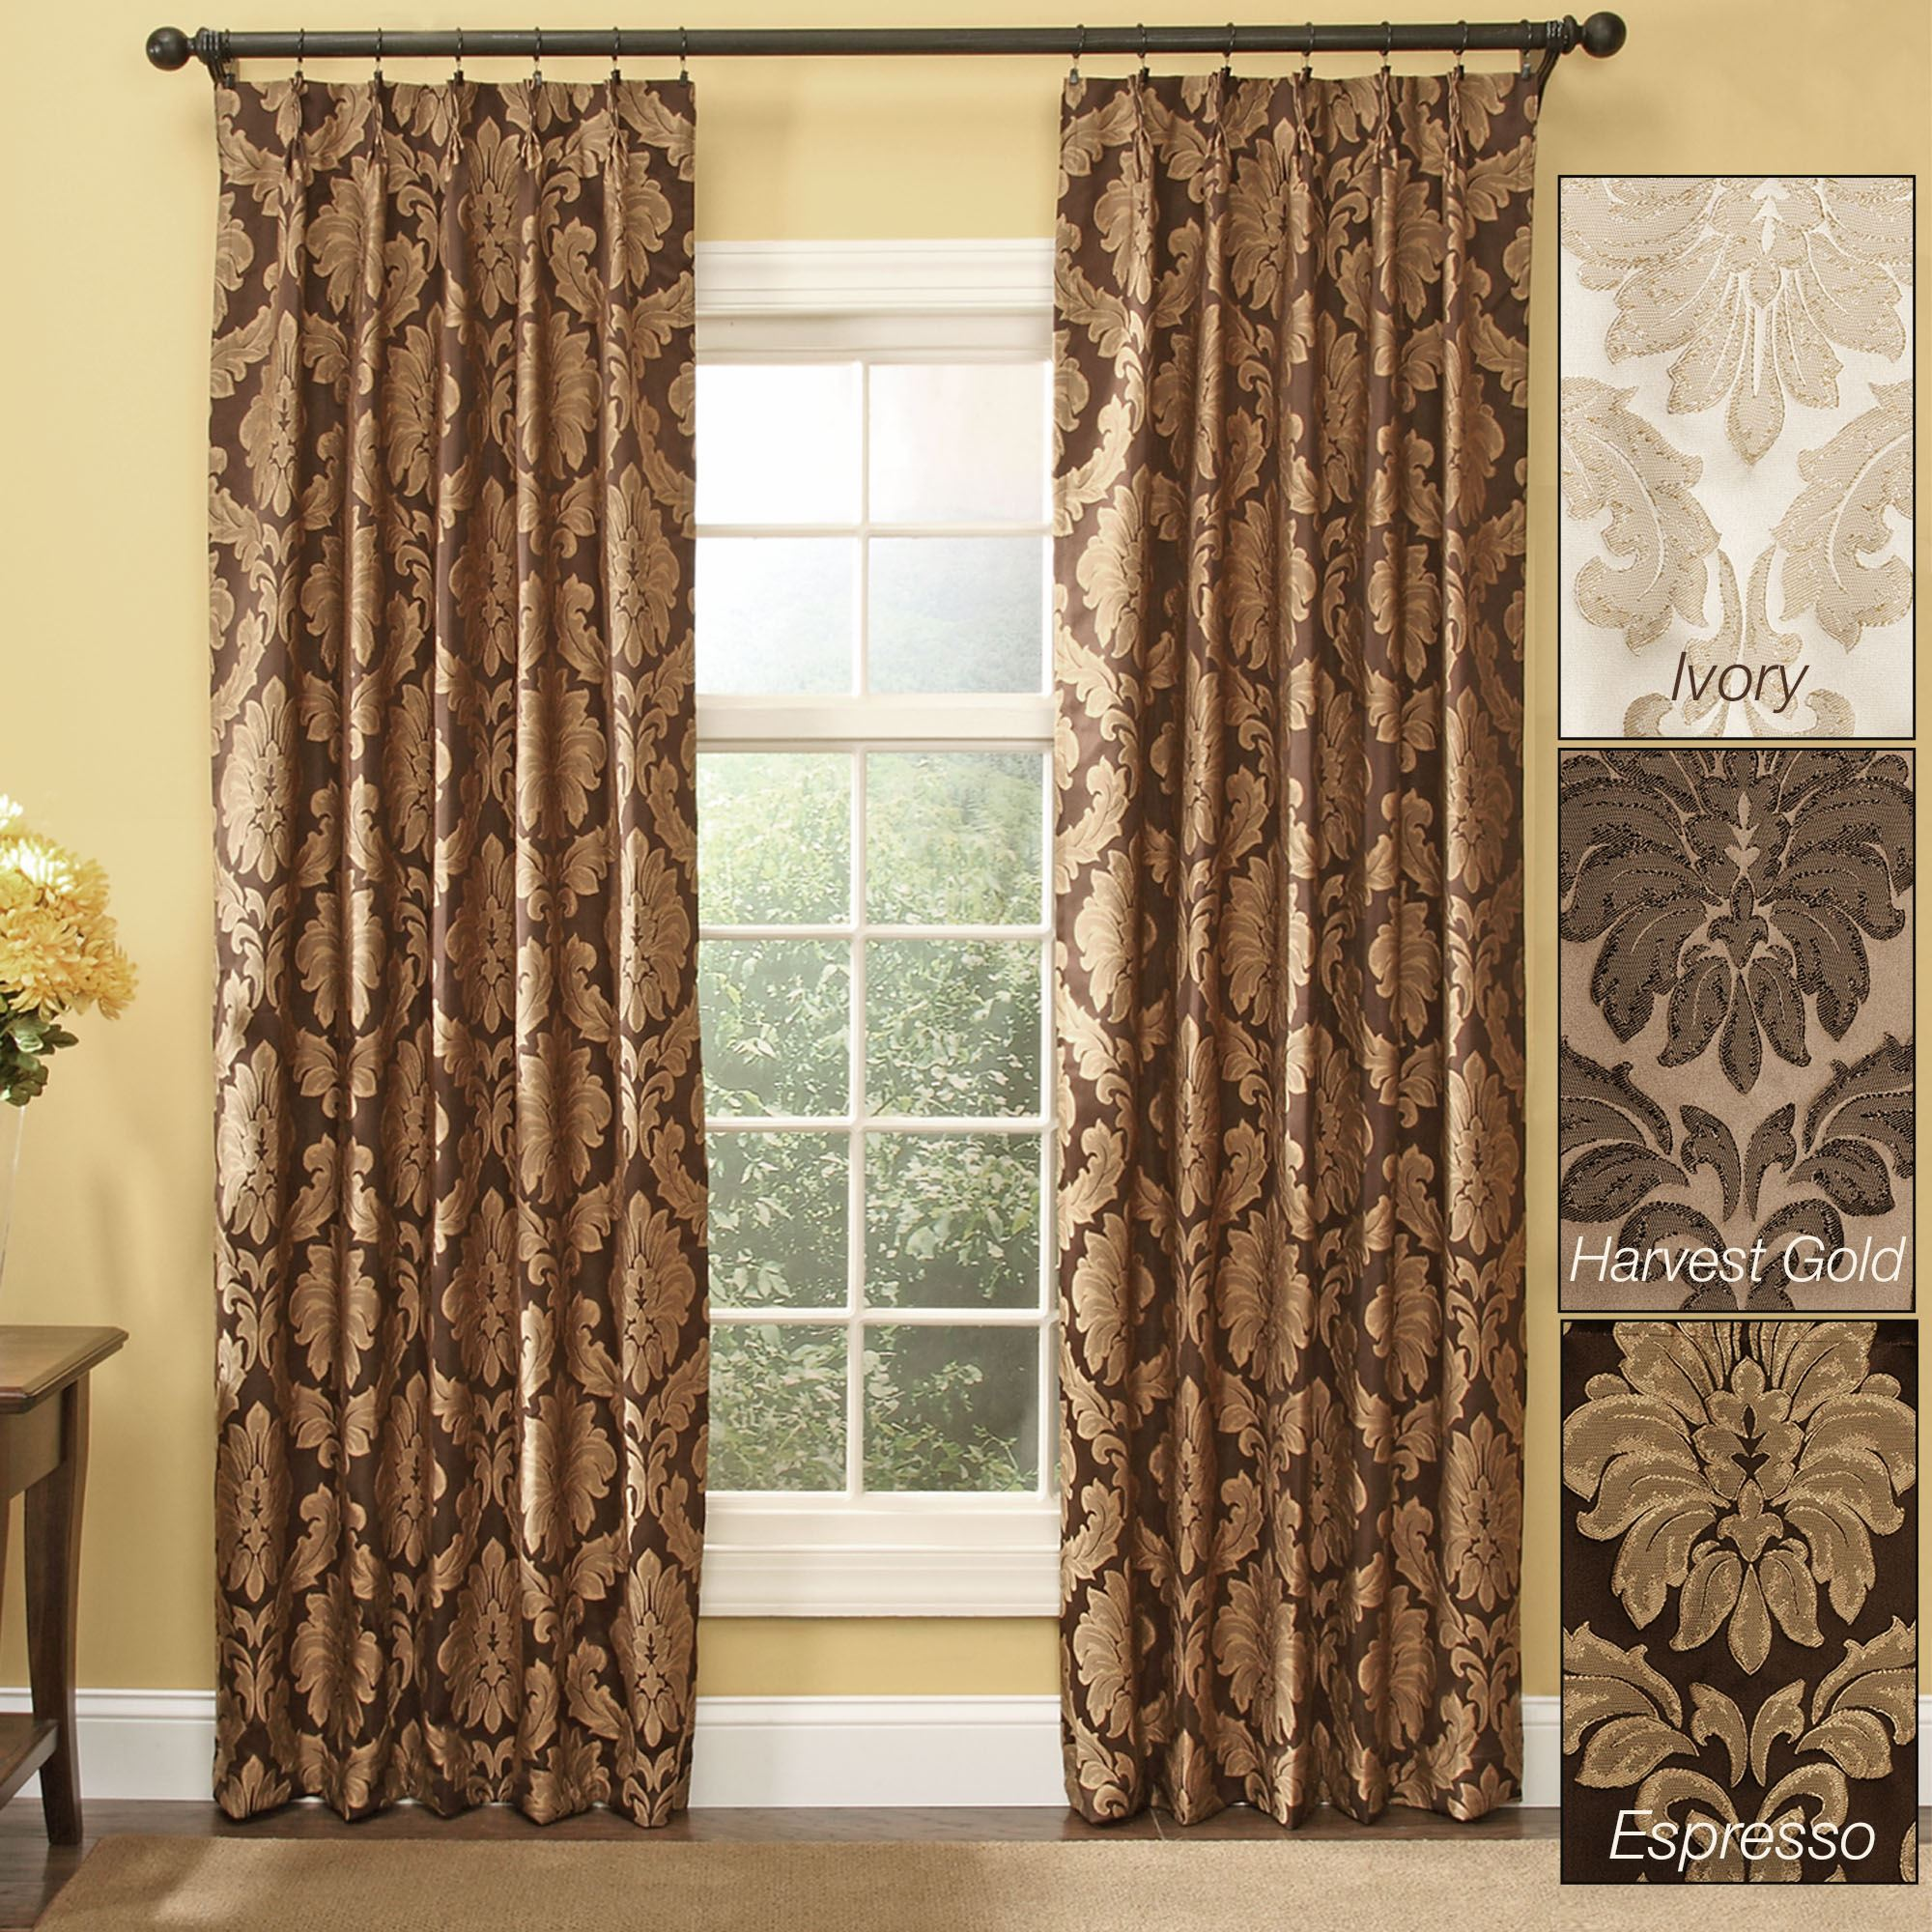 Extra Wide Drapes | Childrens Blackout Curtains | Kohls Drapes